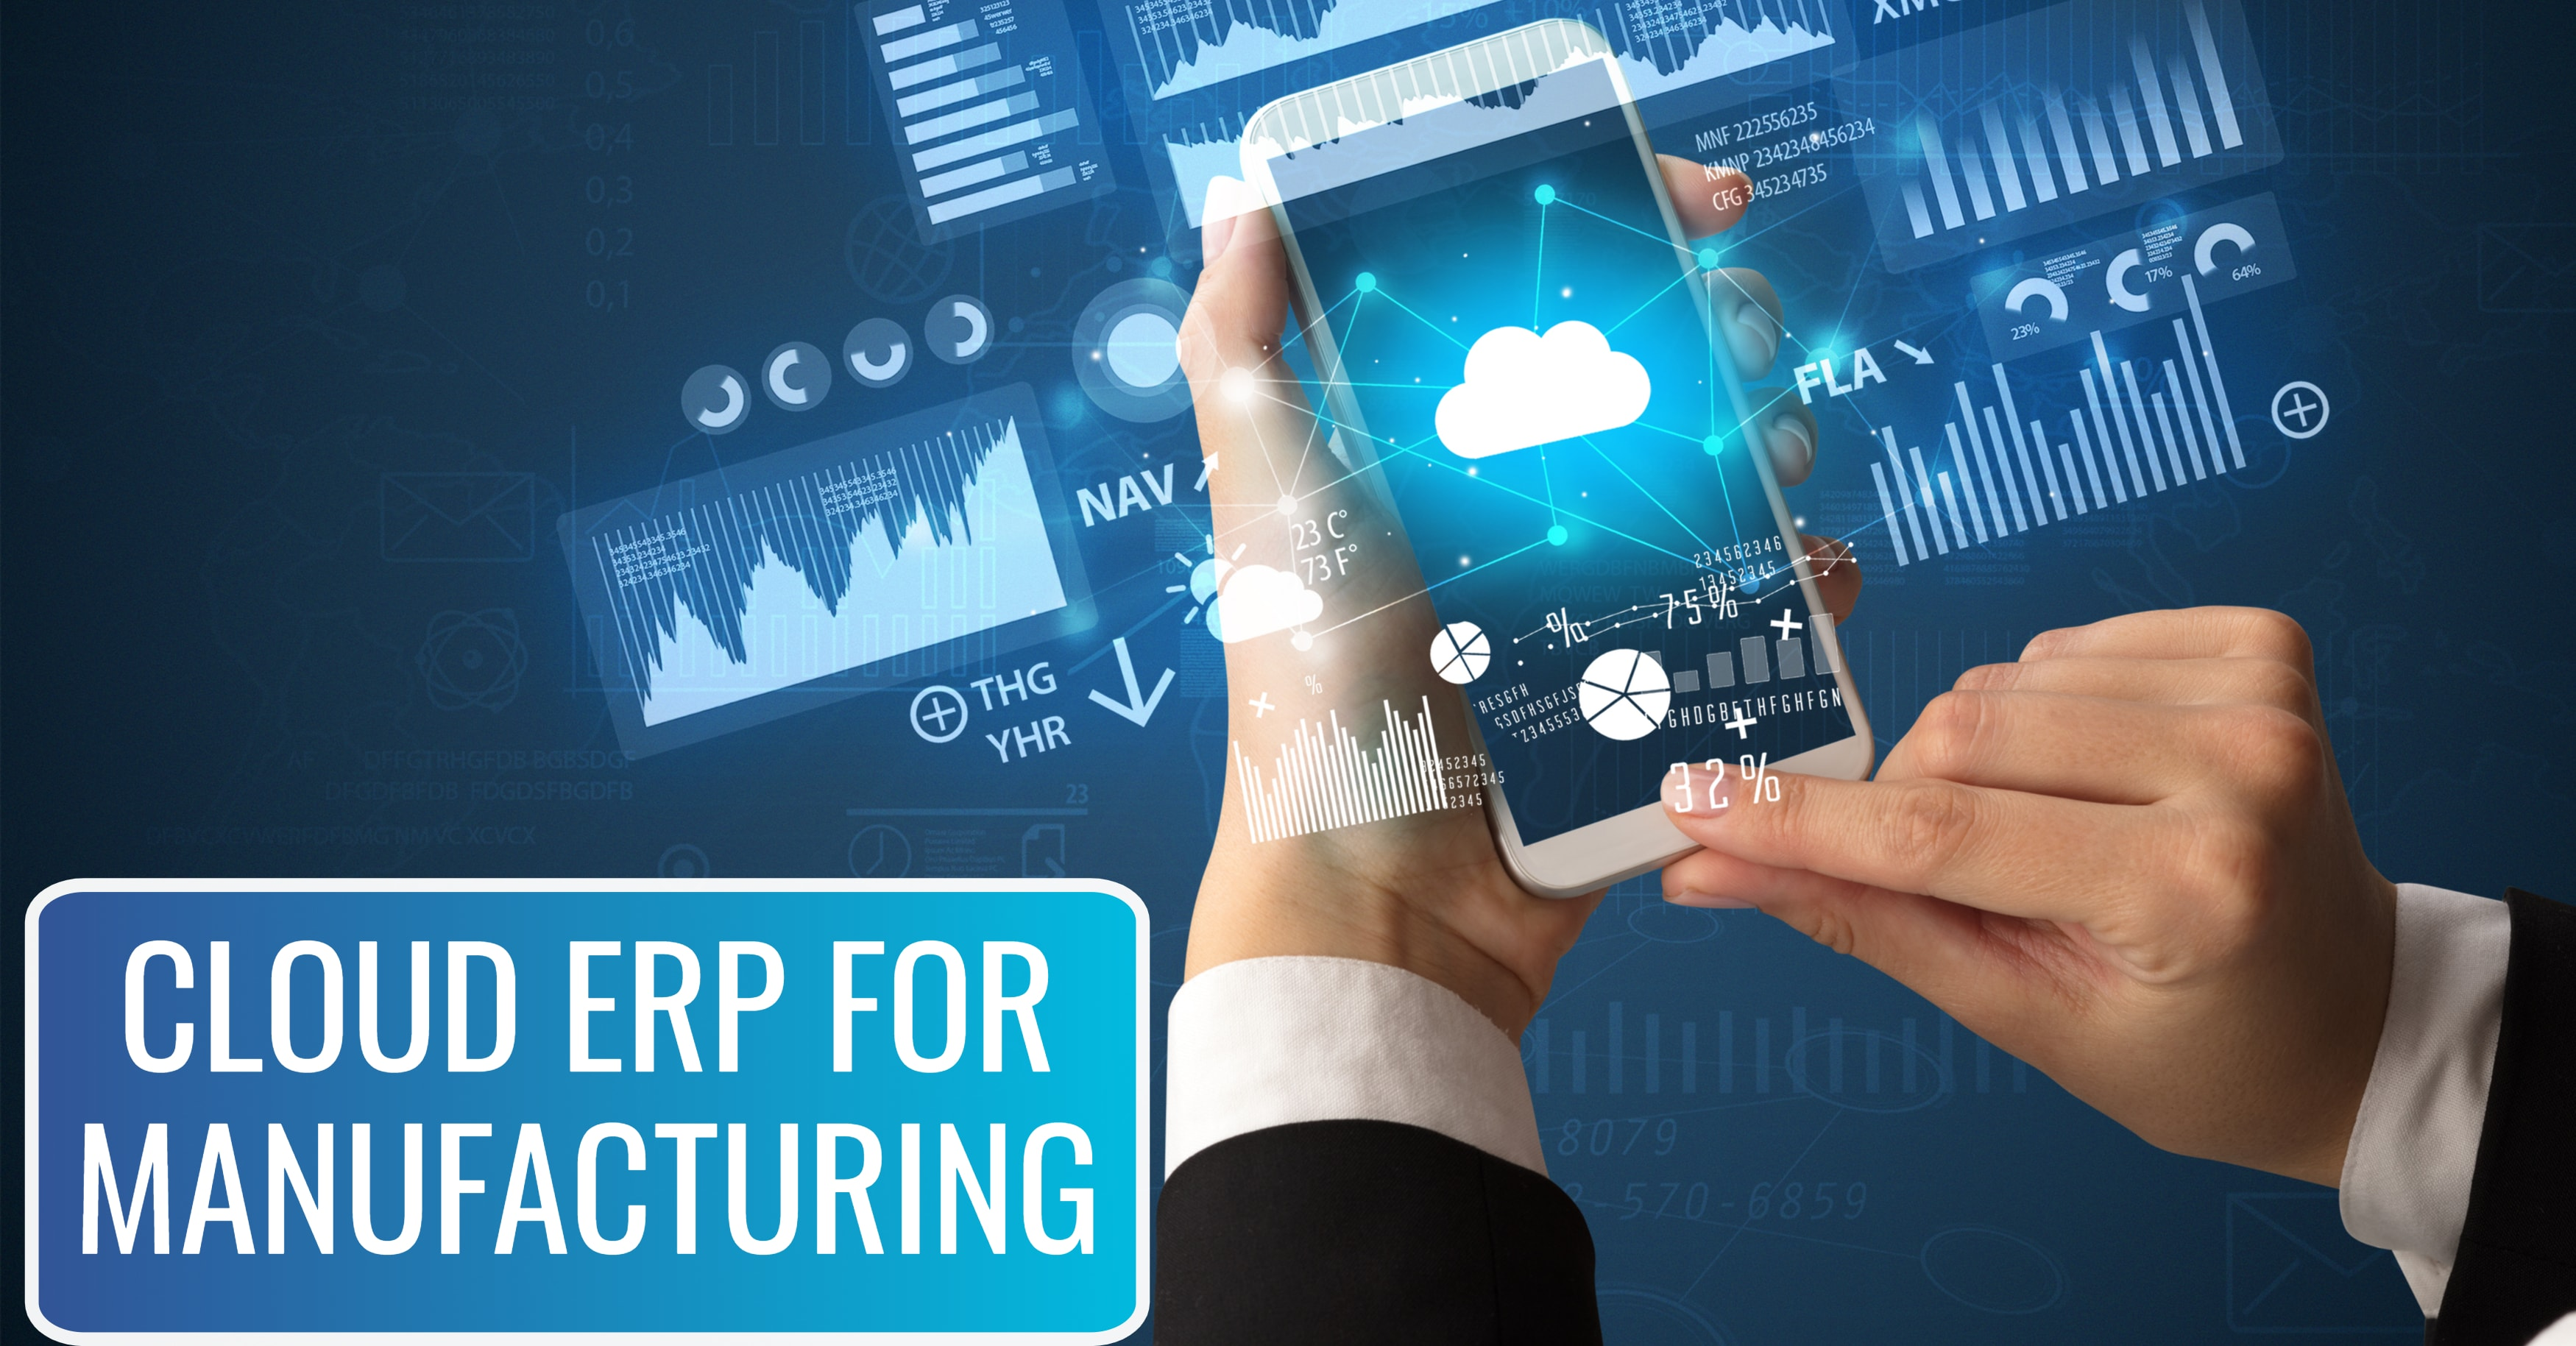 Why Host ERP Manufacturing Software in the Cloud?